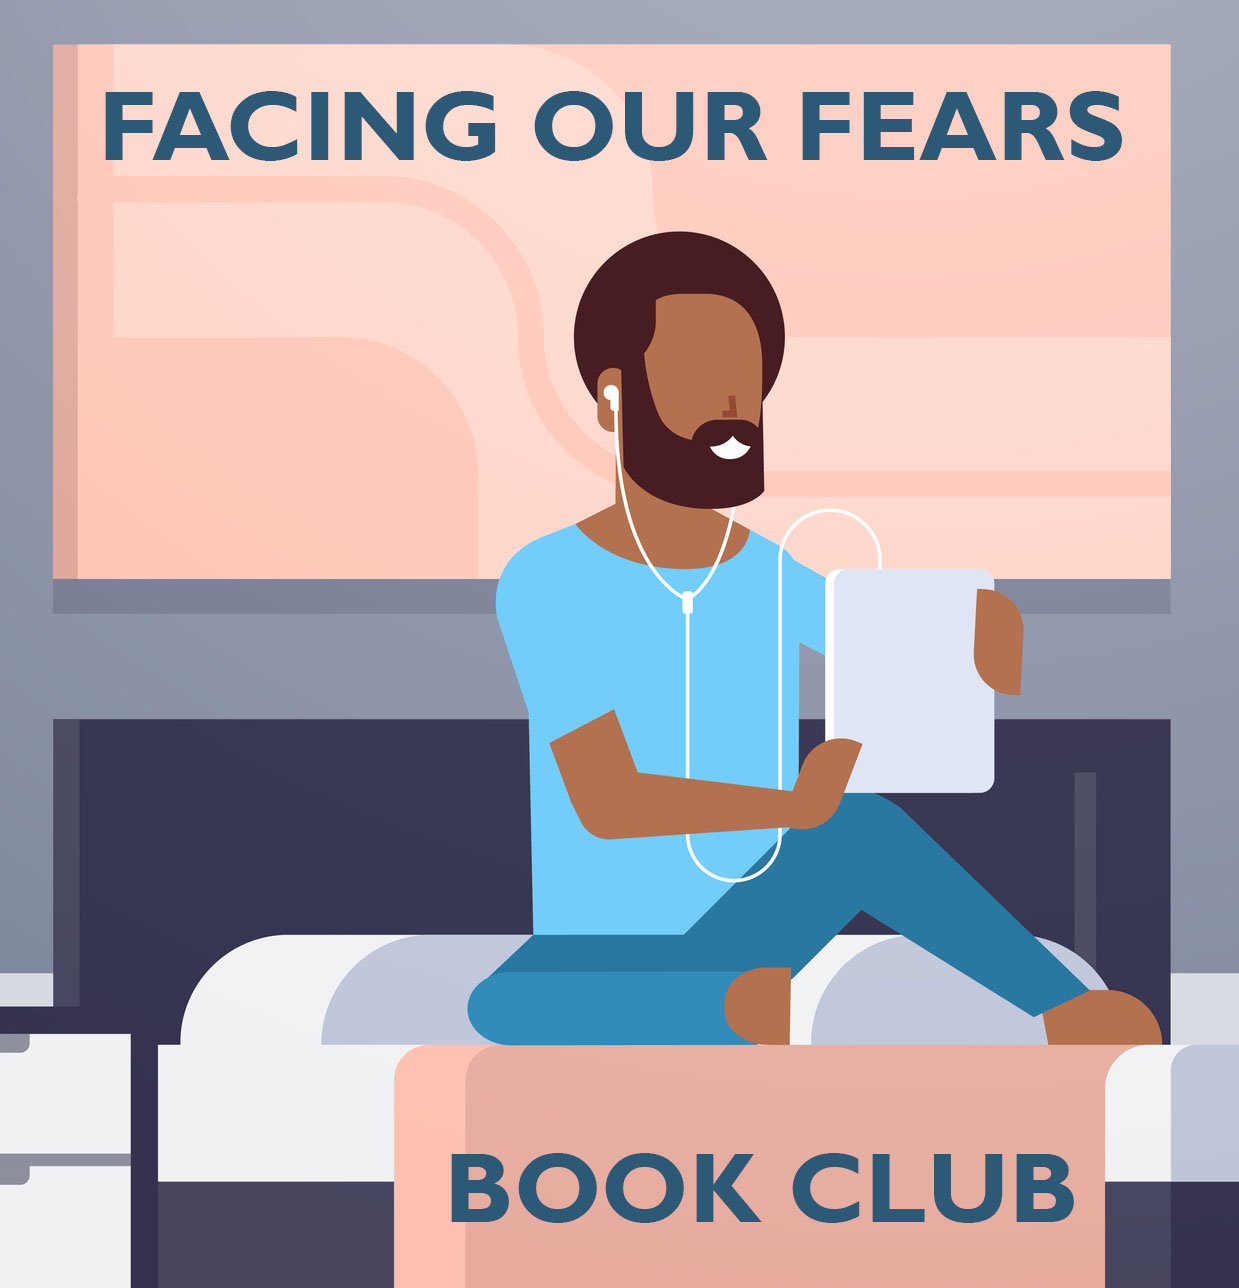 Facing Our Fears Book Club